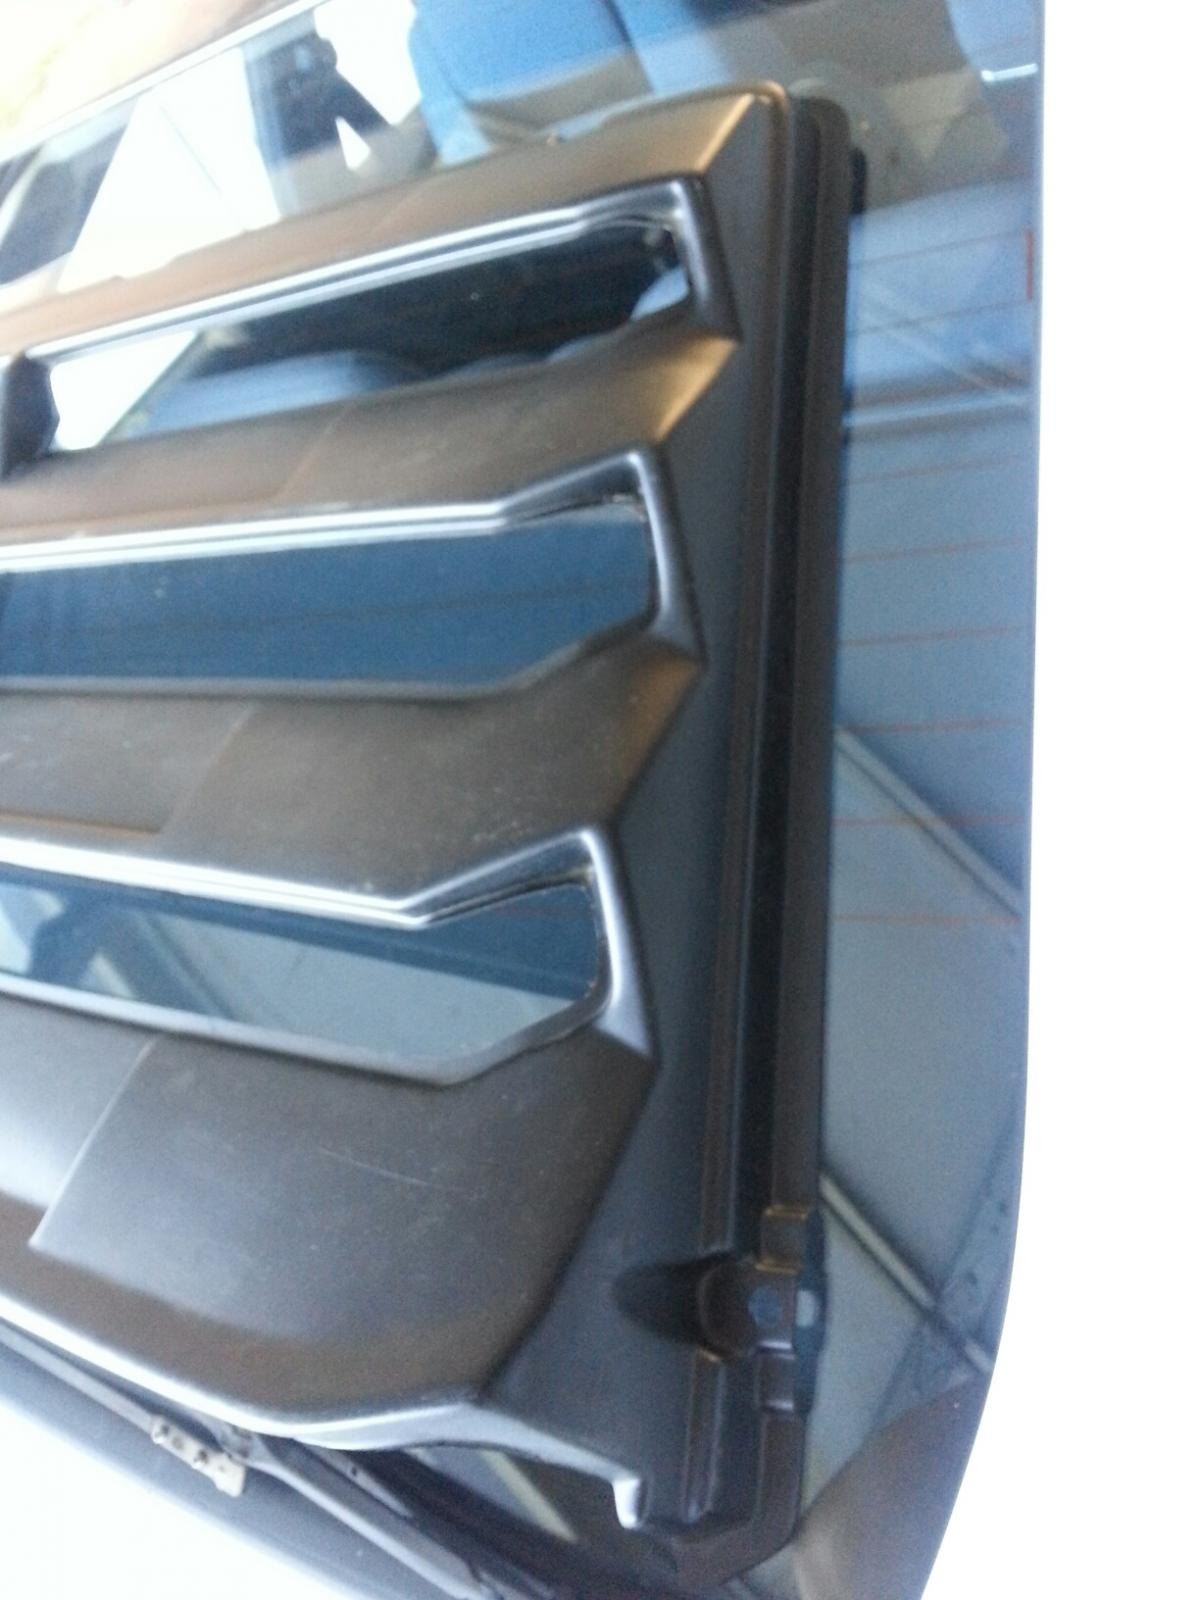 2014 Toyota Corolla For Sale >> 1979-1982 Toyota Corolla (Te72) Hatch Rear Louver - For Sale - Car Parts - rollaclub.com